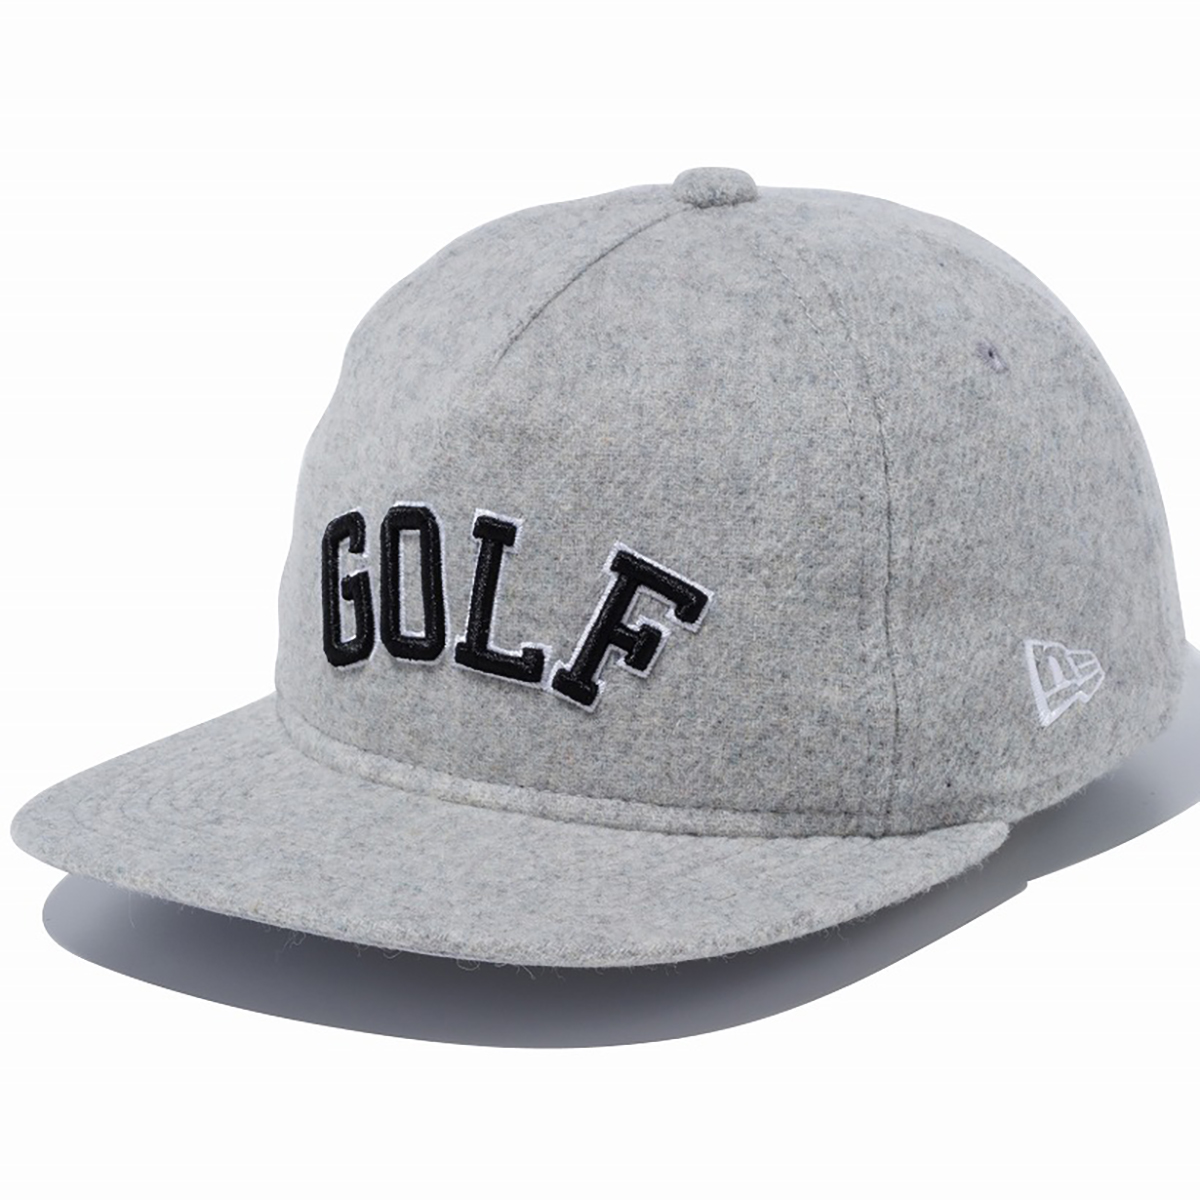 GOLF GOLFER MELTON ARCH キャップ